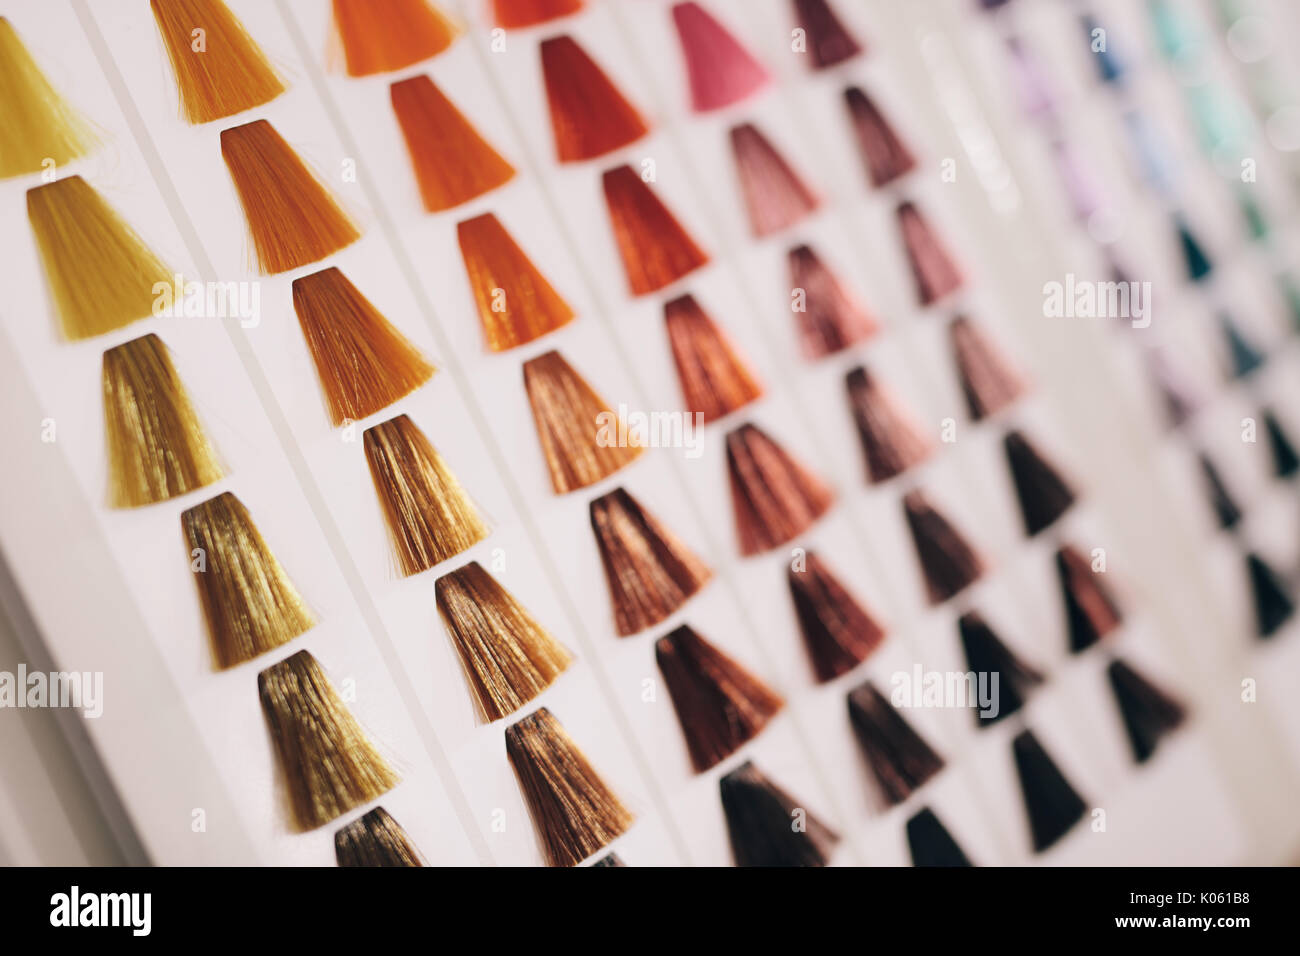 Closeup of hair samples with different color shades on a card. Hair color choice chart on display at salon. - Stock Image